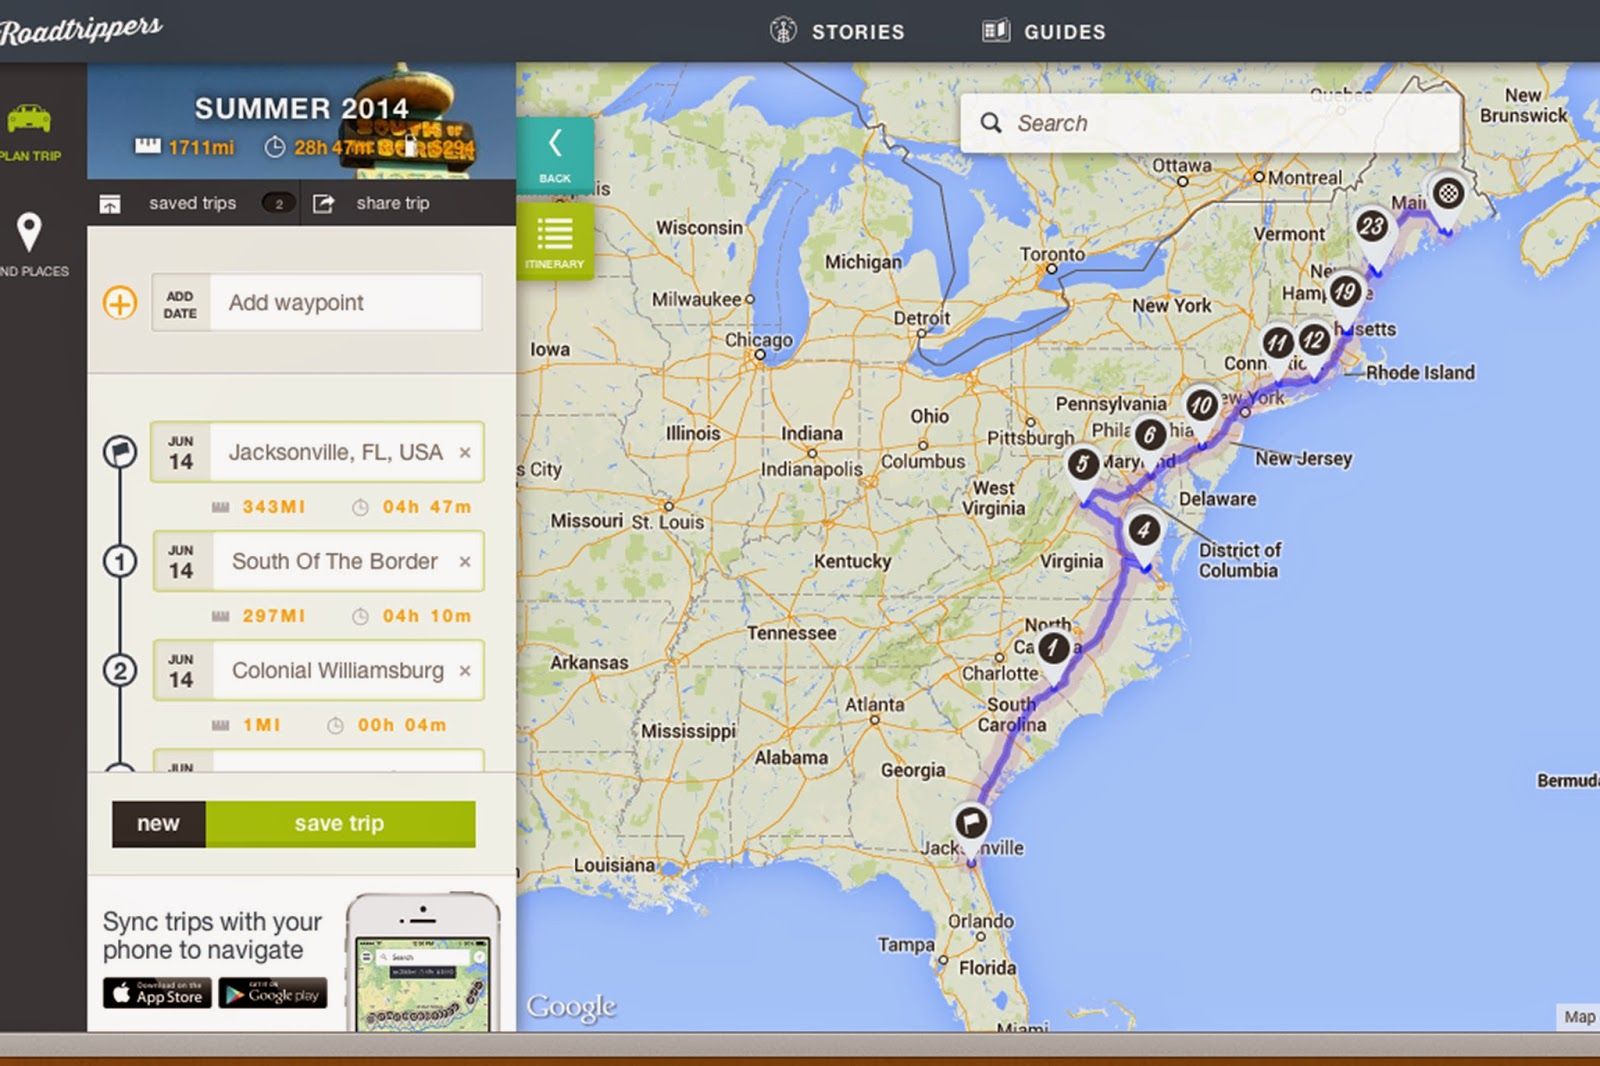 Daydreaming and Sightseeing East Coast Road Trip with the family – East Coast Tourist Attractions Map